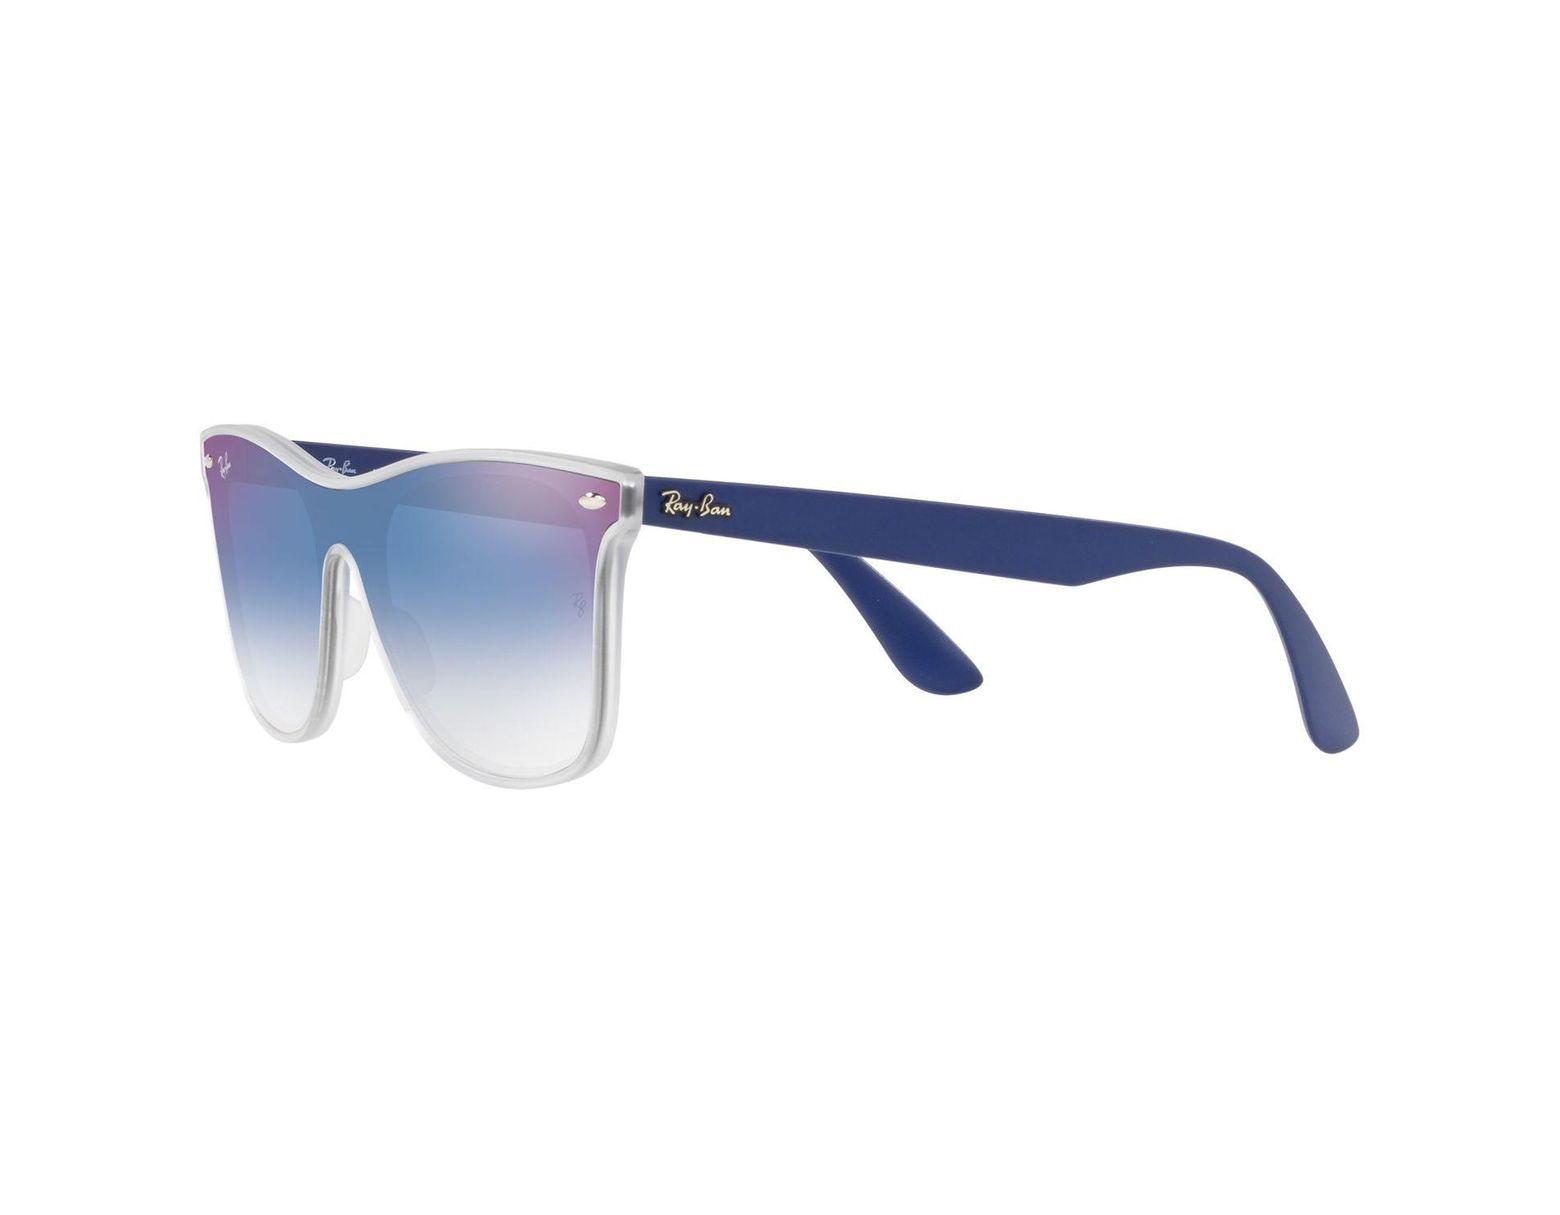 4710659a01 Ray-Ban Rb4440 Unisex Polarised Mirrored Sunglasses in Blue - Lyst